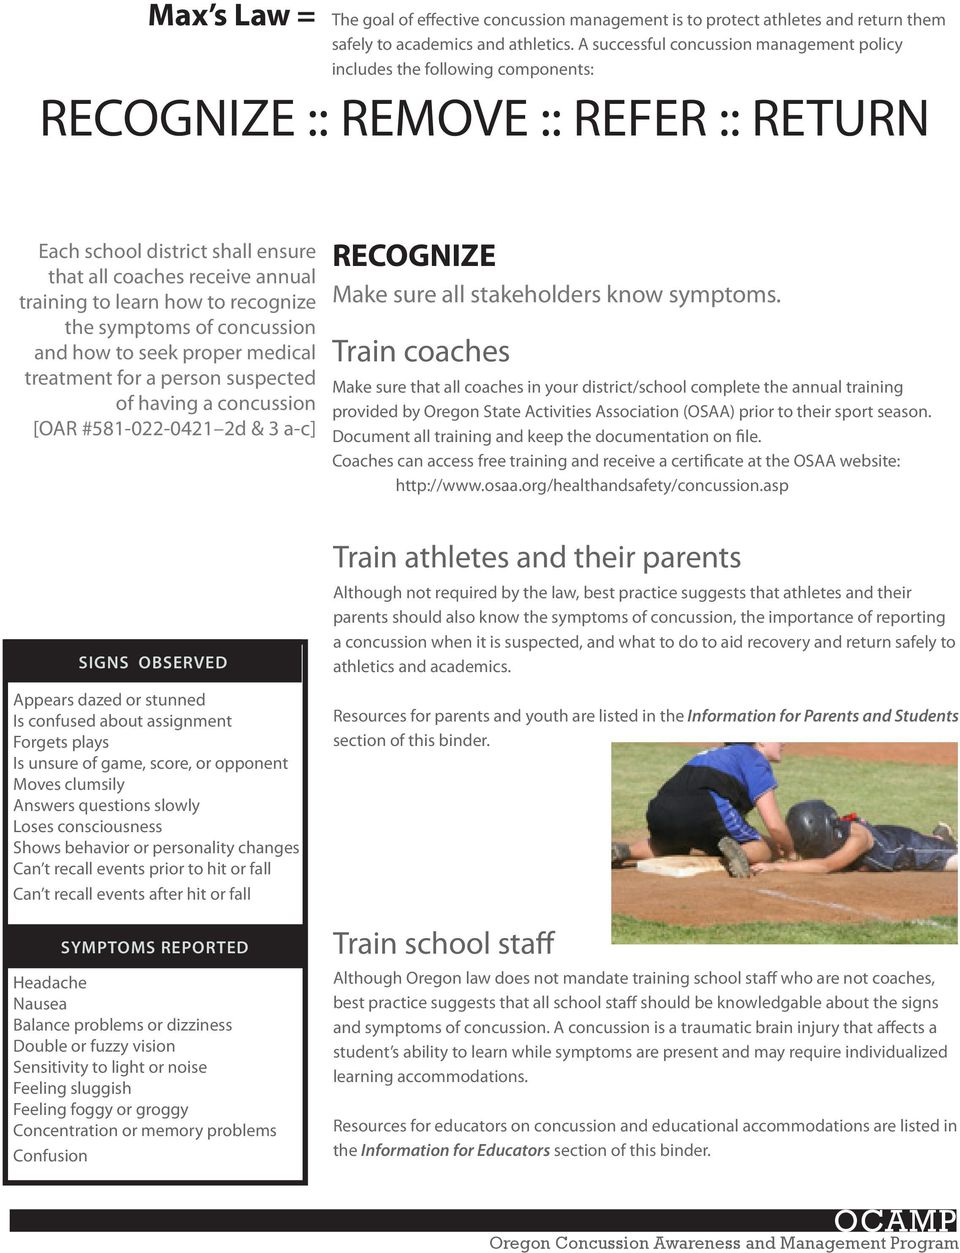 how to recognize the symptoms of concussion and how to seek proper medical treatment for a person suspected of having a concussion [OAR #581-022-0421 2d & 3 a-c] SIGNS OBSERVED Appears dazed or